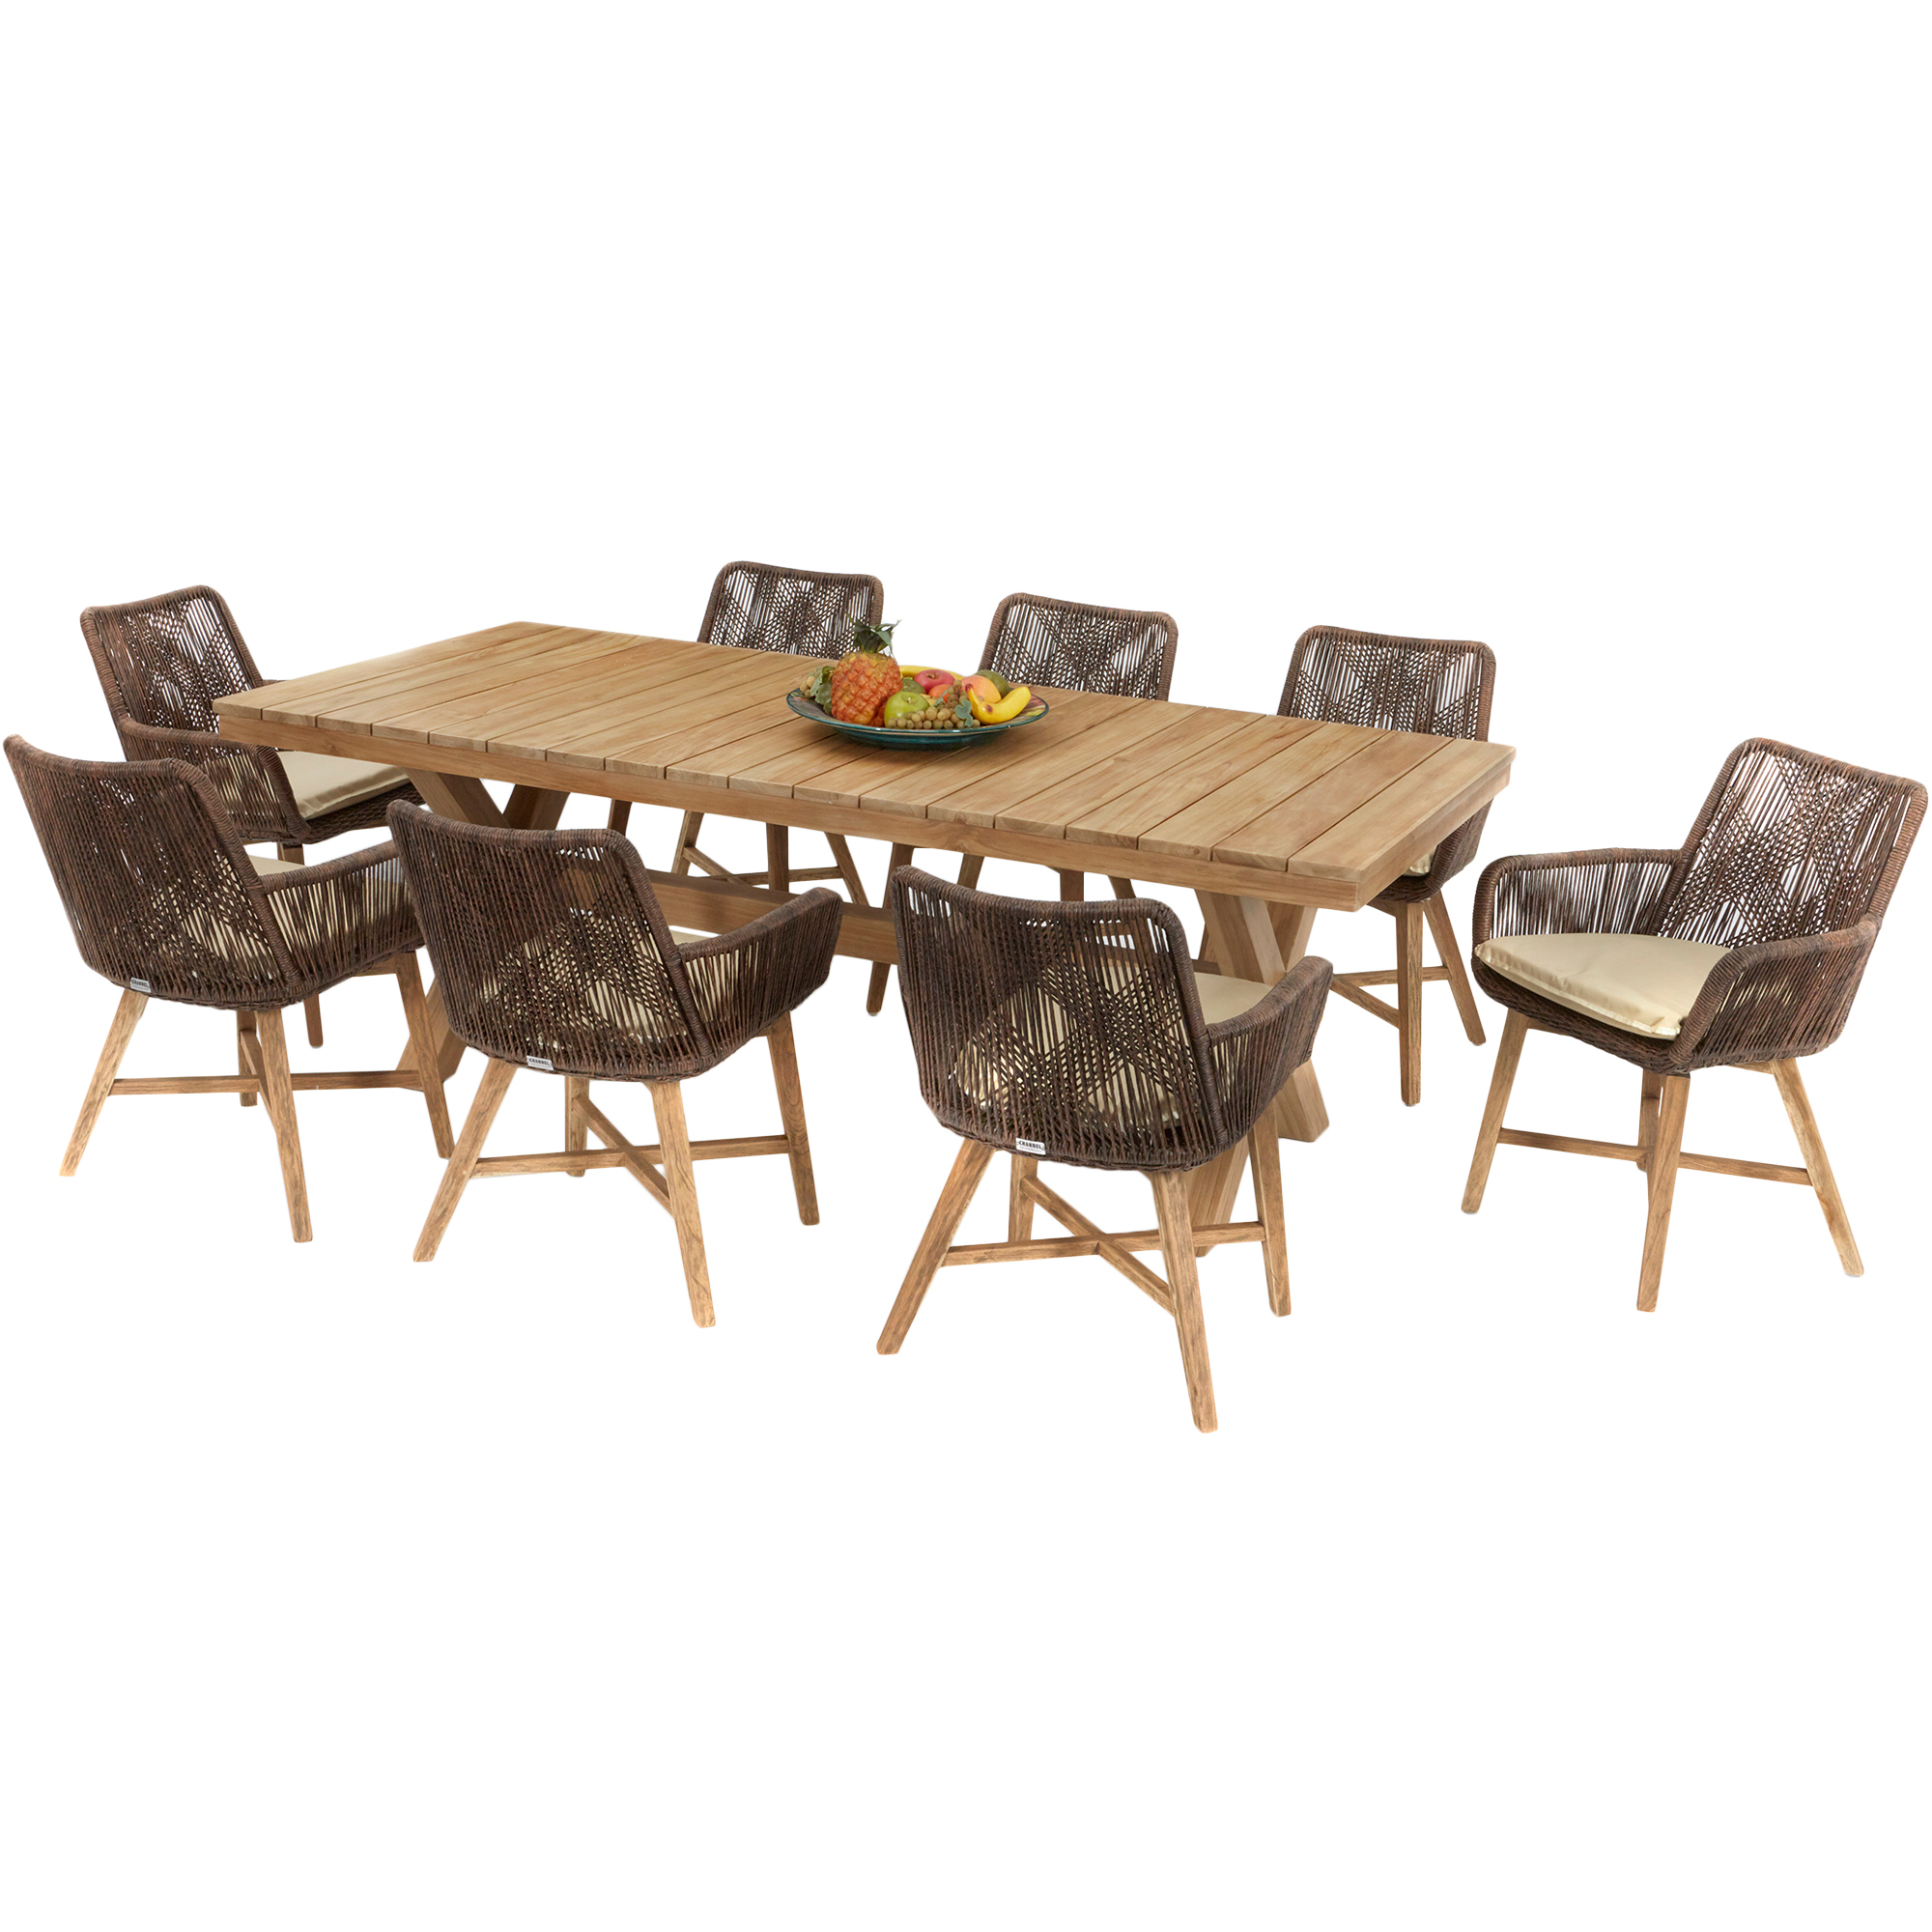 Outdoor Dining Table 8 Seater